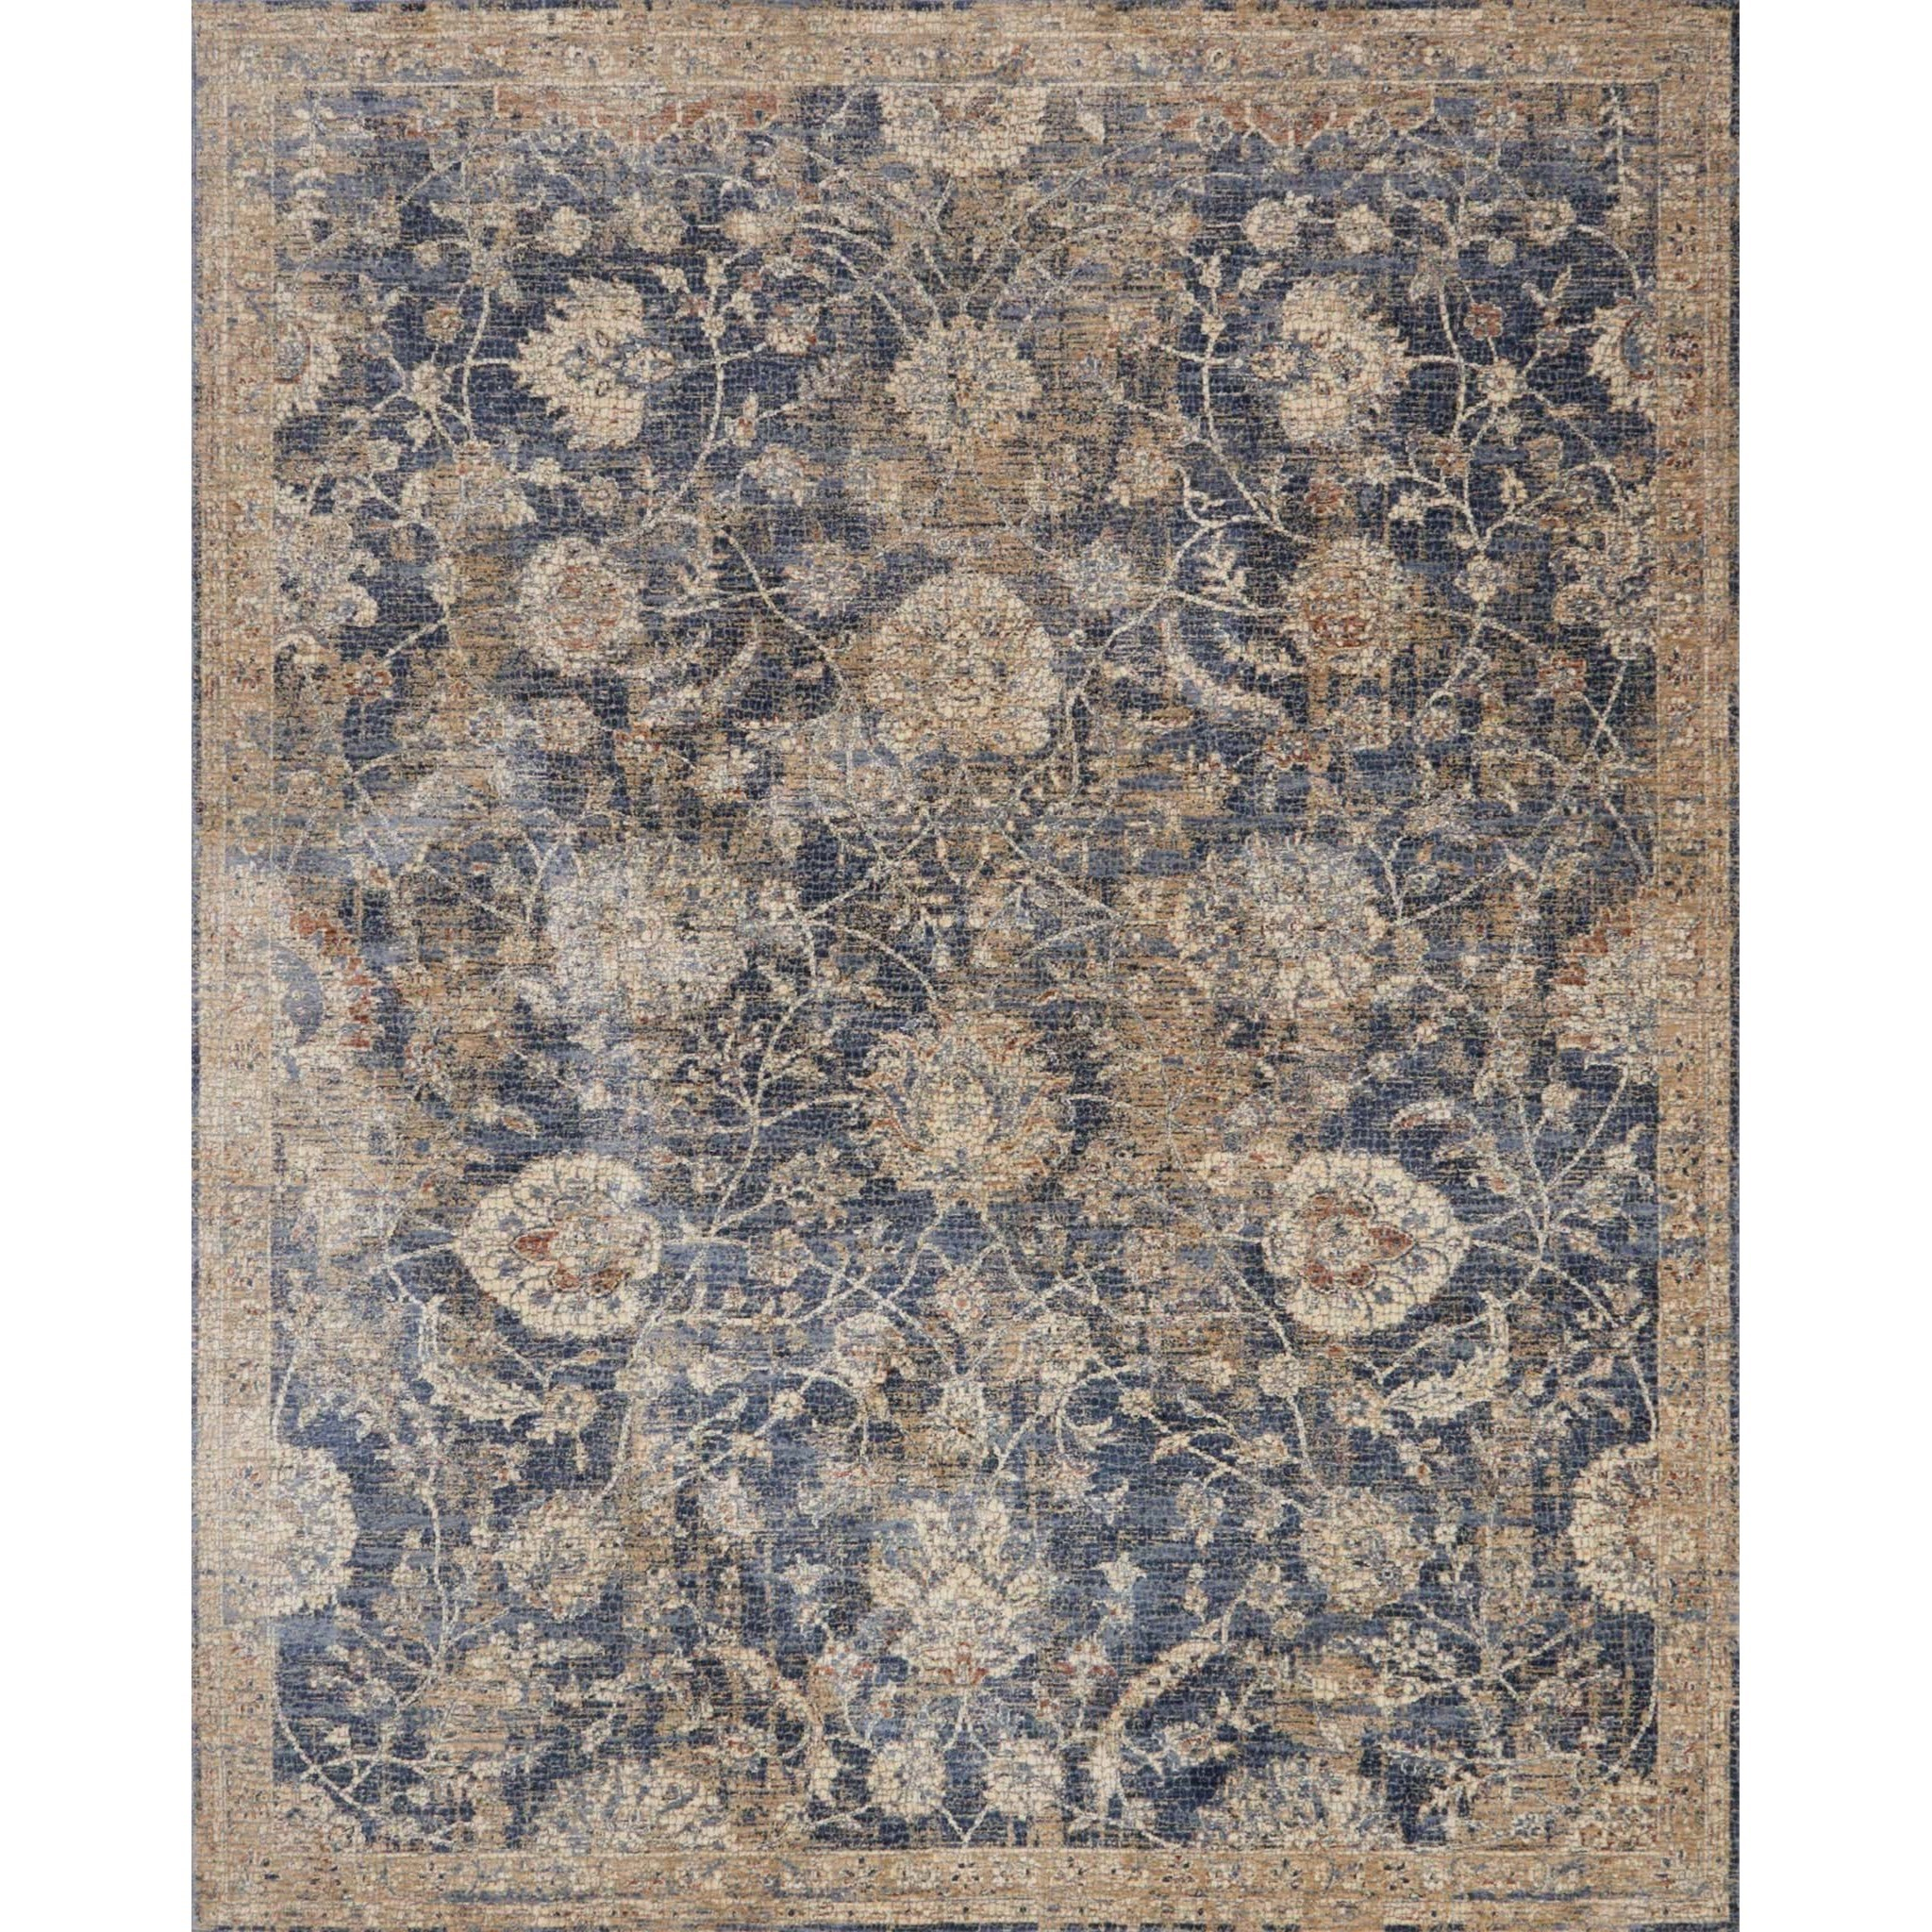 """Porcia 7'-10"""" X 7'-10"""" Round Rug by Loloi Rugs at Virginia Furniture Market"""